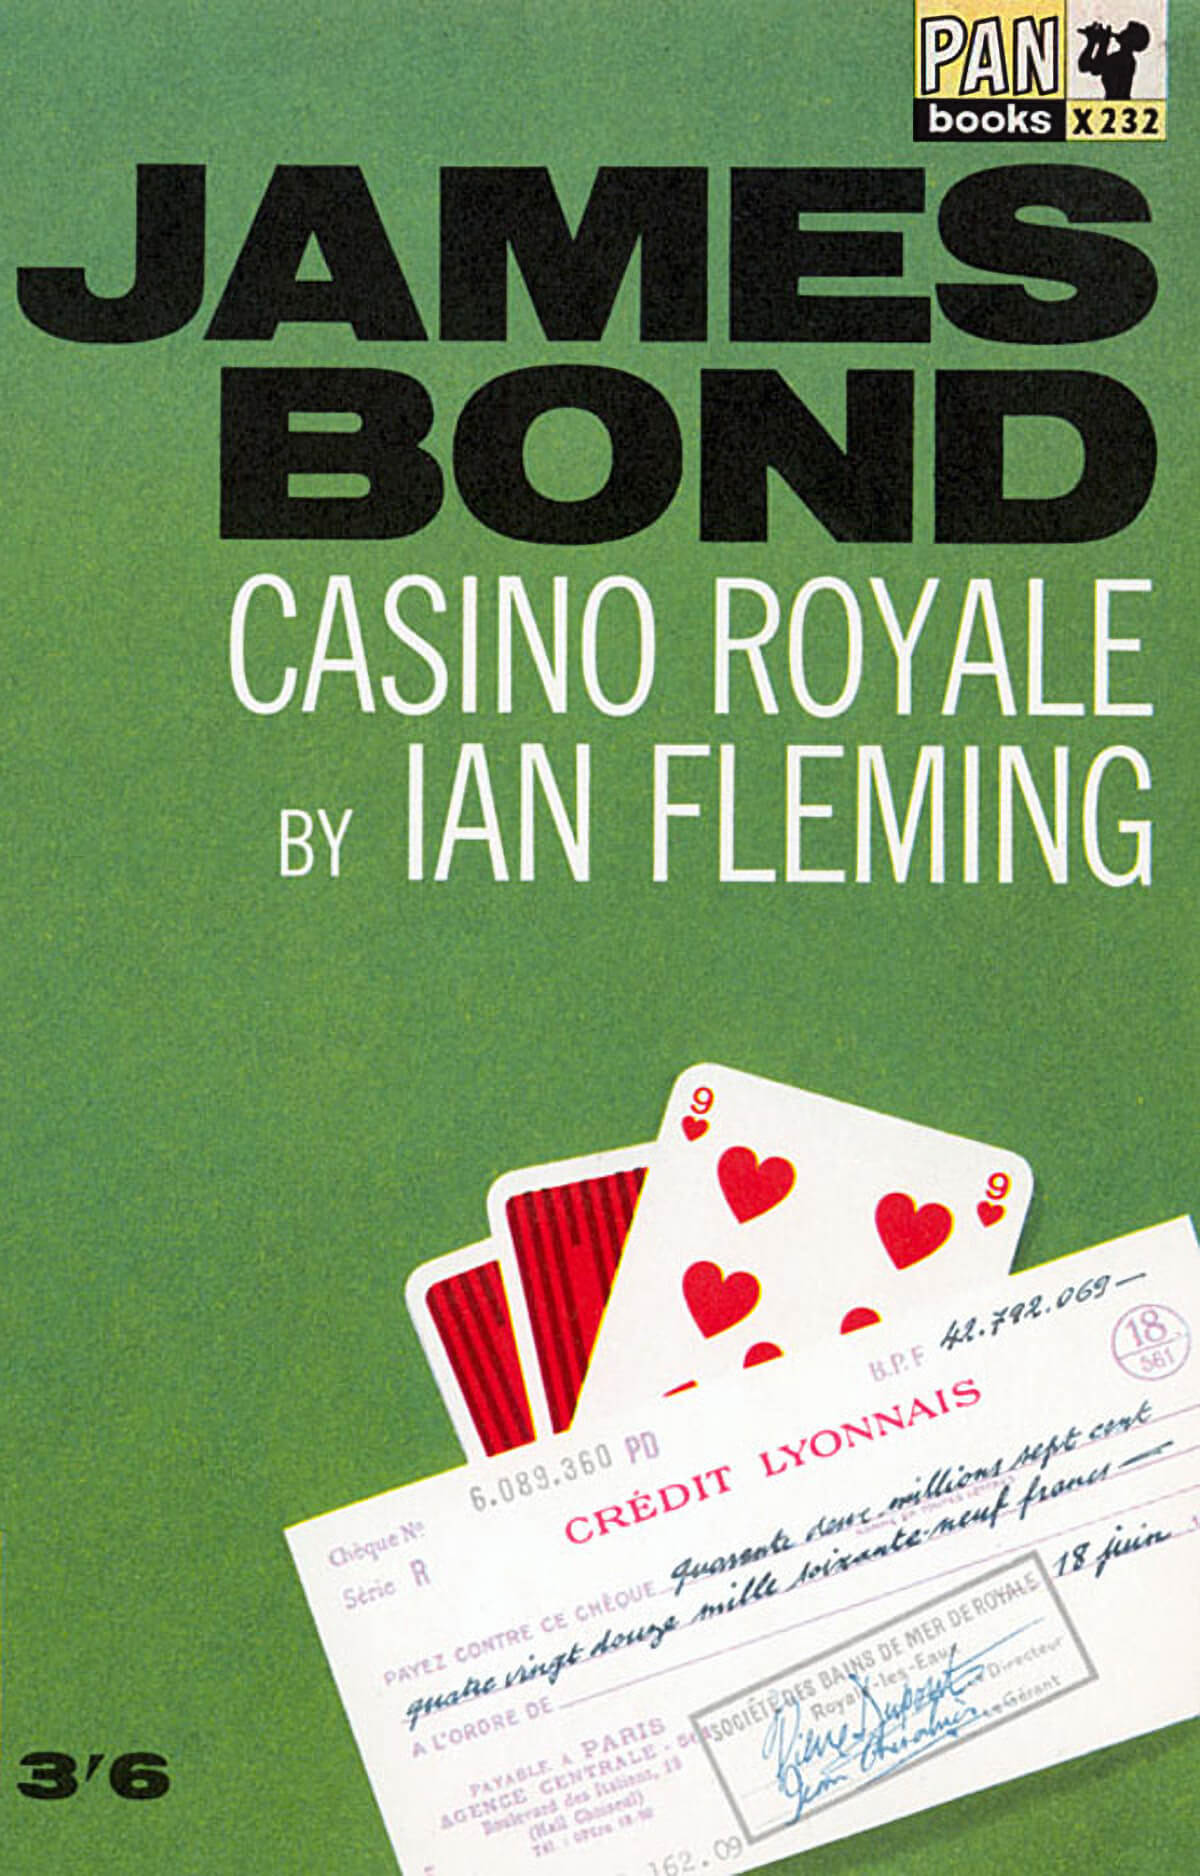 Book cover of James bond with cheque and cards on it.